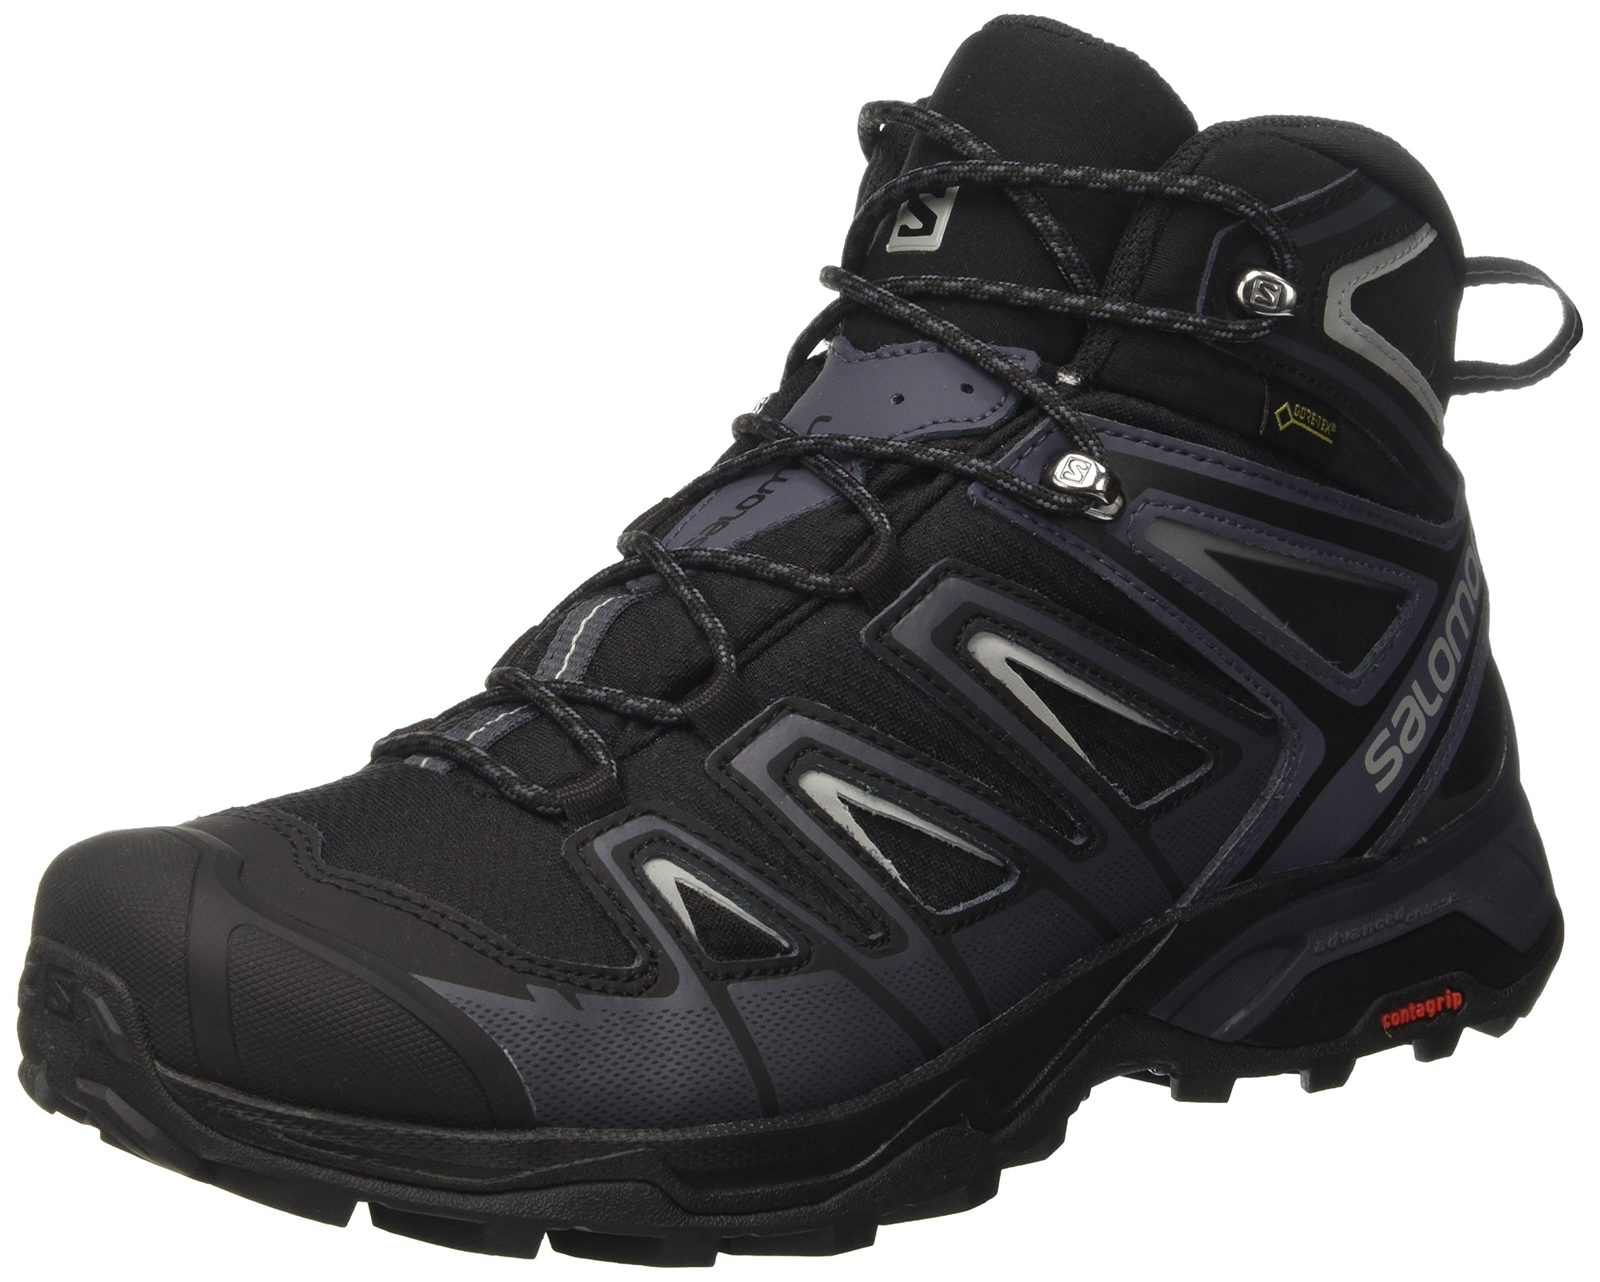 Salomon Men's X Ultra 3 Mid GTX Hiking Boot, Black, 12 M US